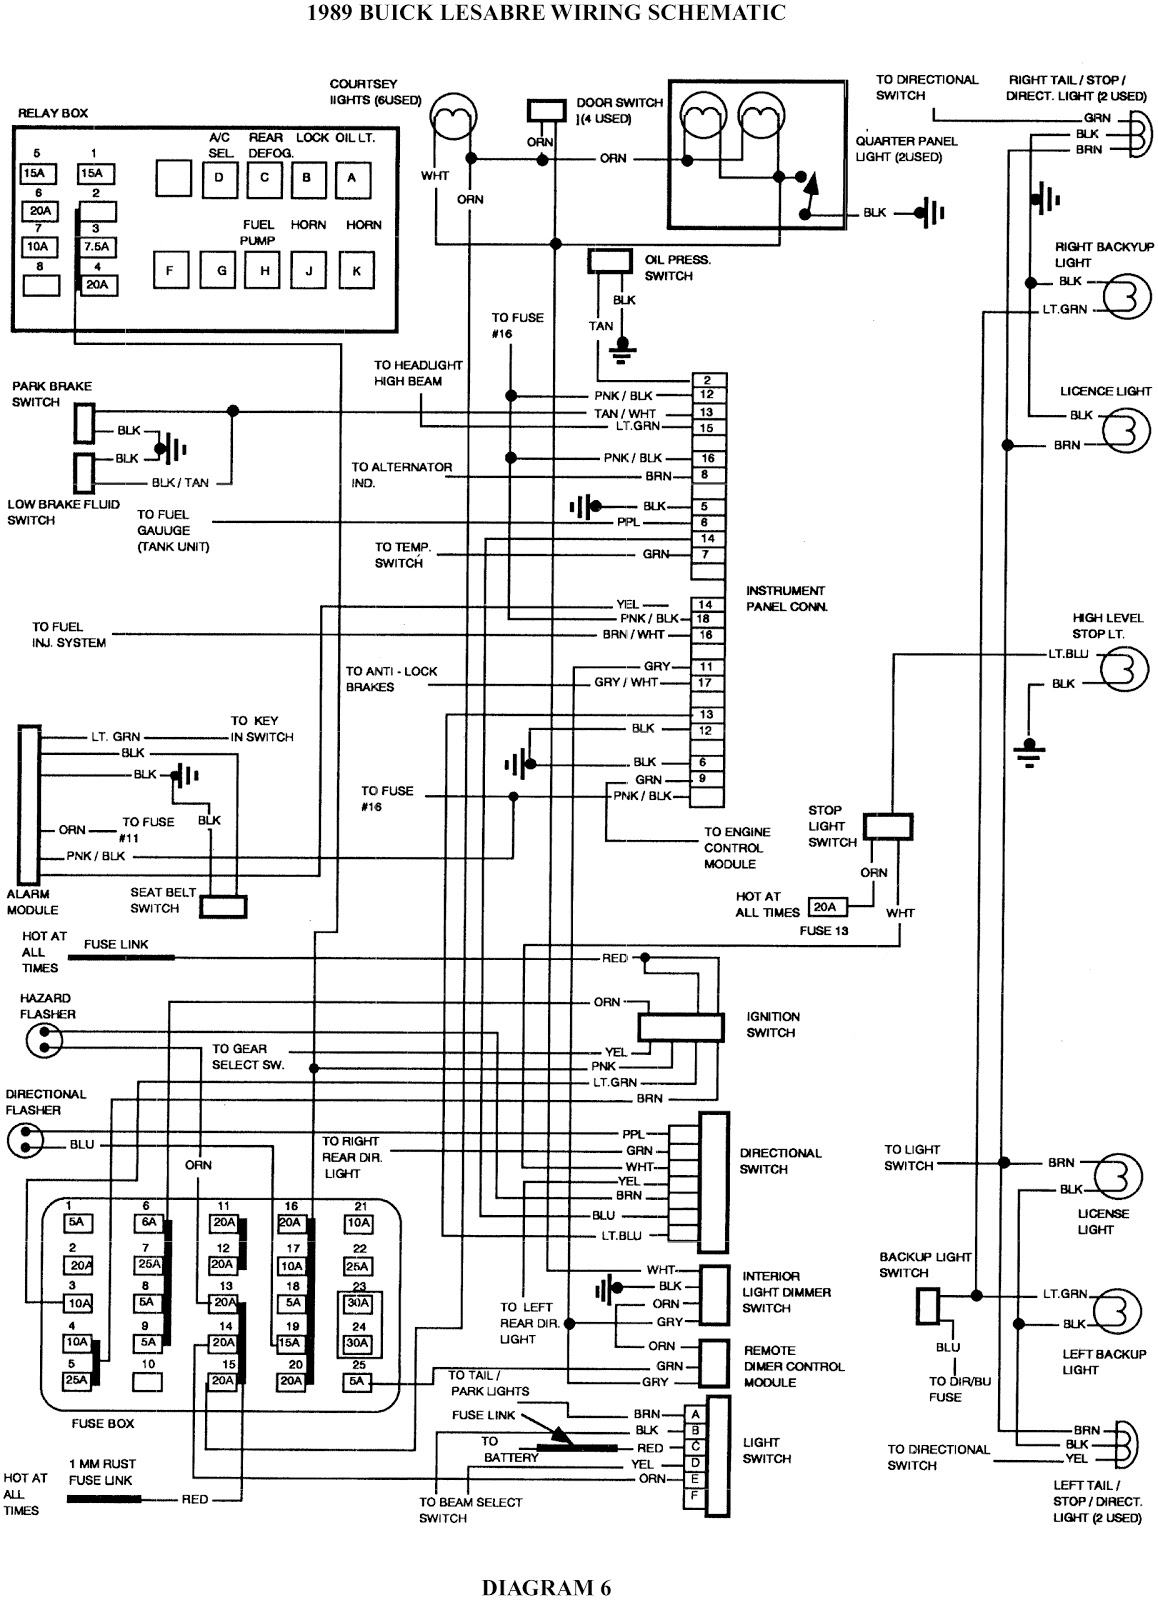 wiring diagram for 1999 buick lesabre wiring diagram for 1997 buick lesabre